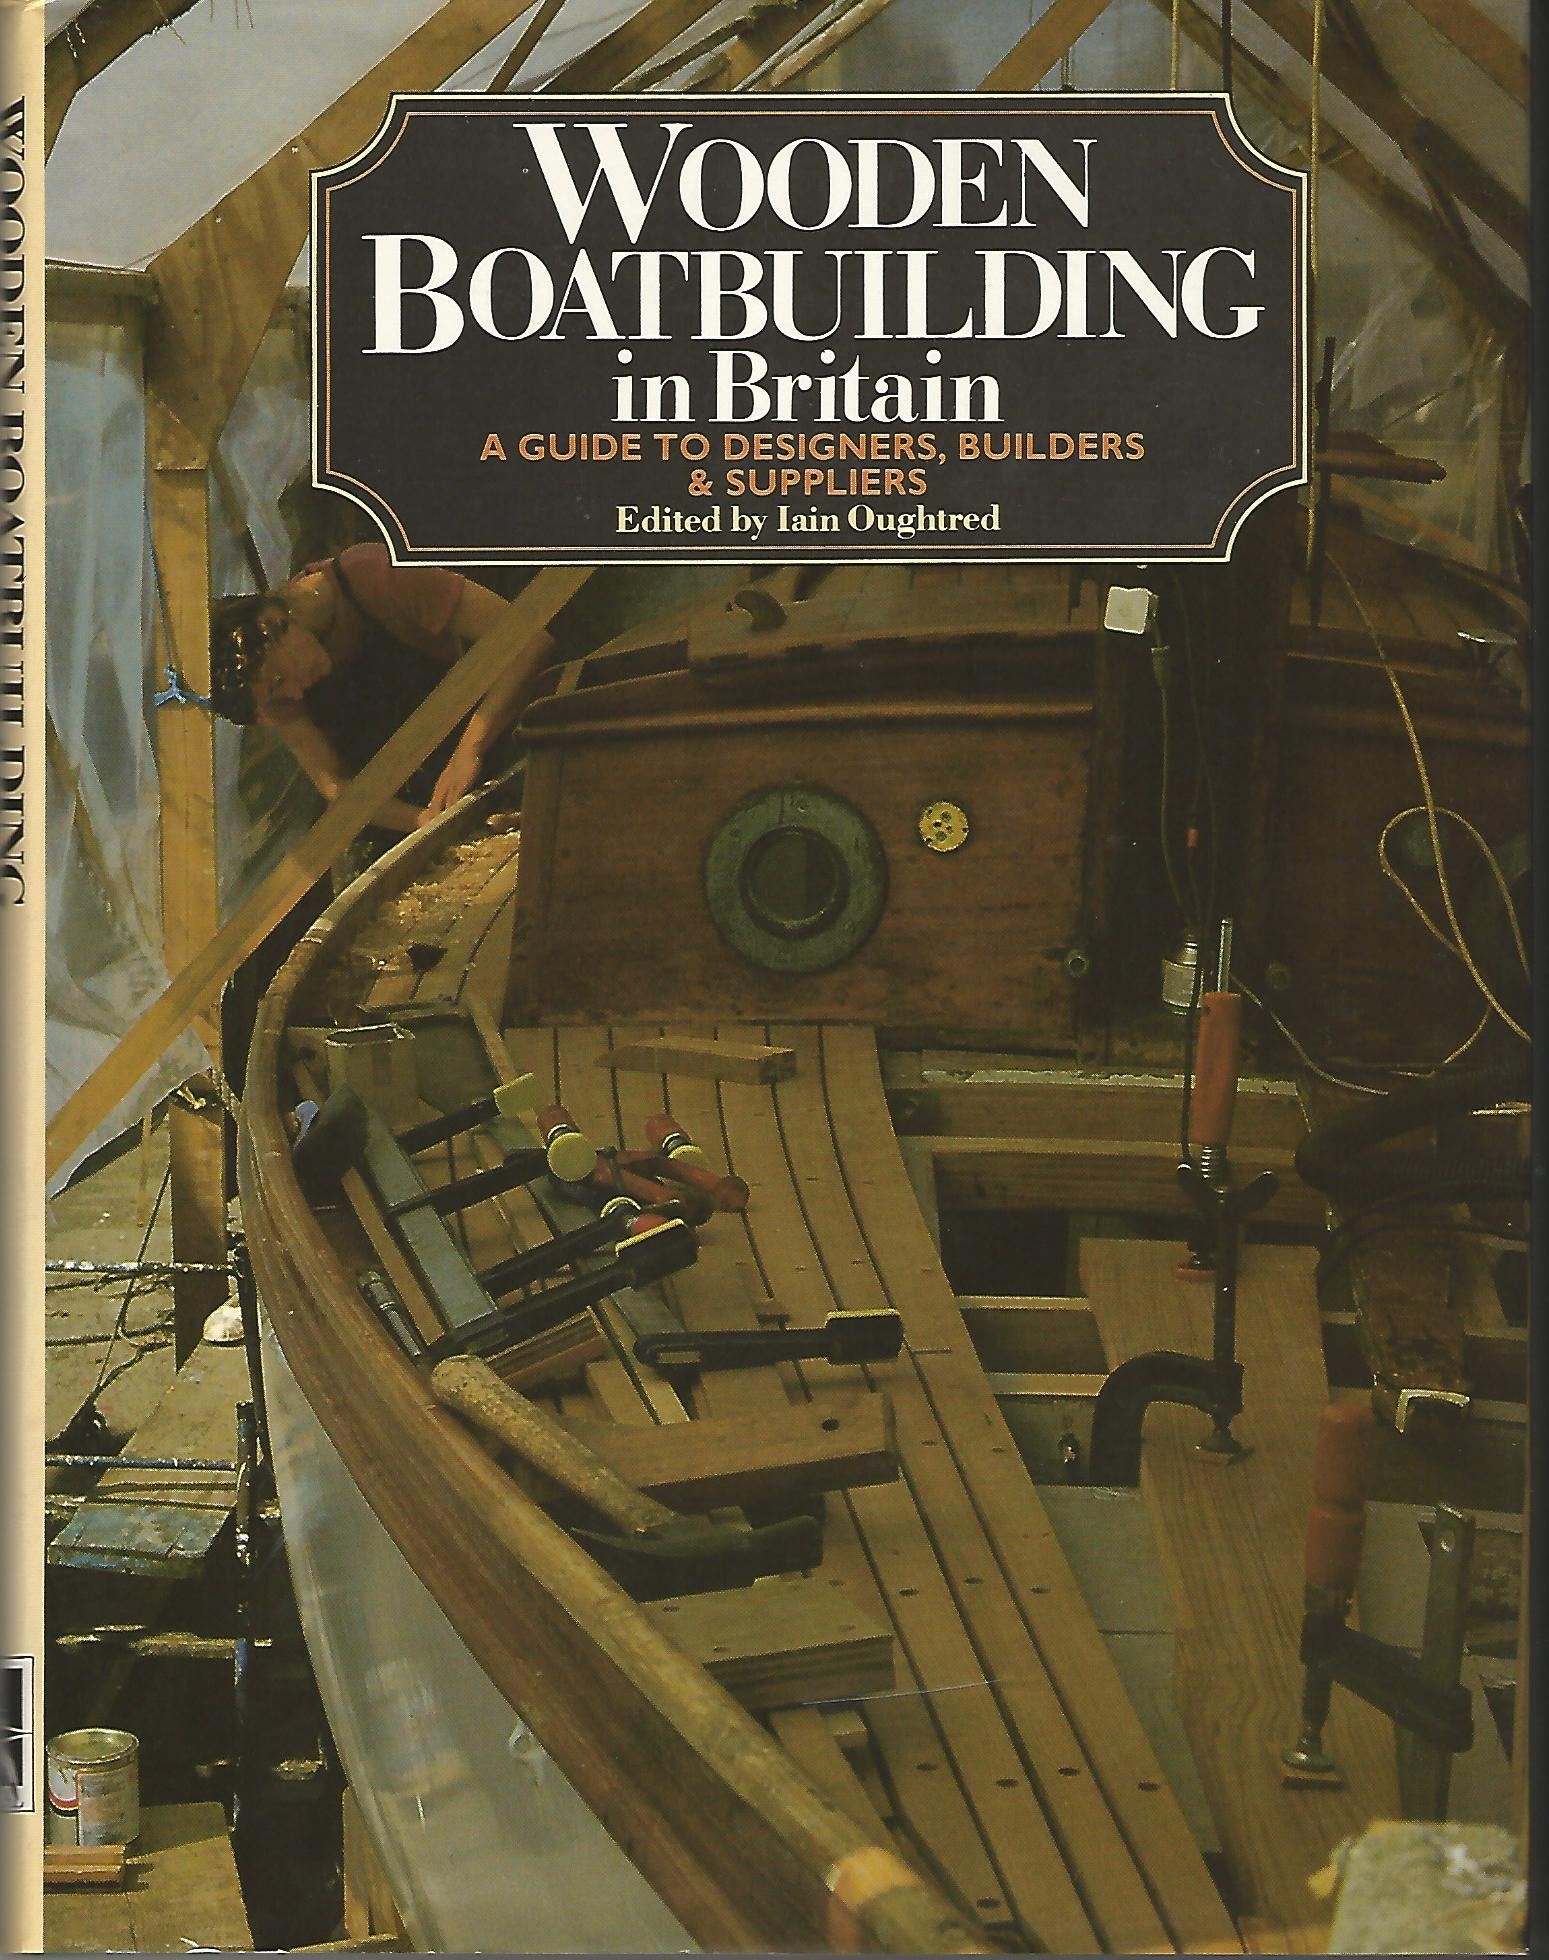 Image for Wooden Boat Building in Britain: A Guide to Designers, Builders and Suppliers